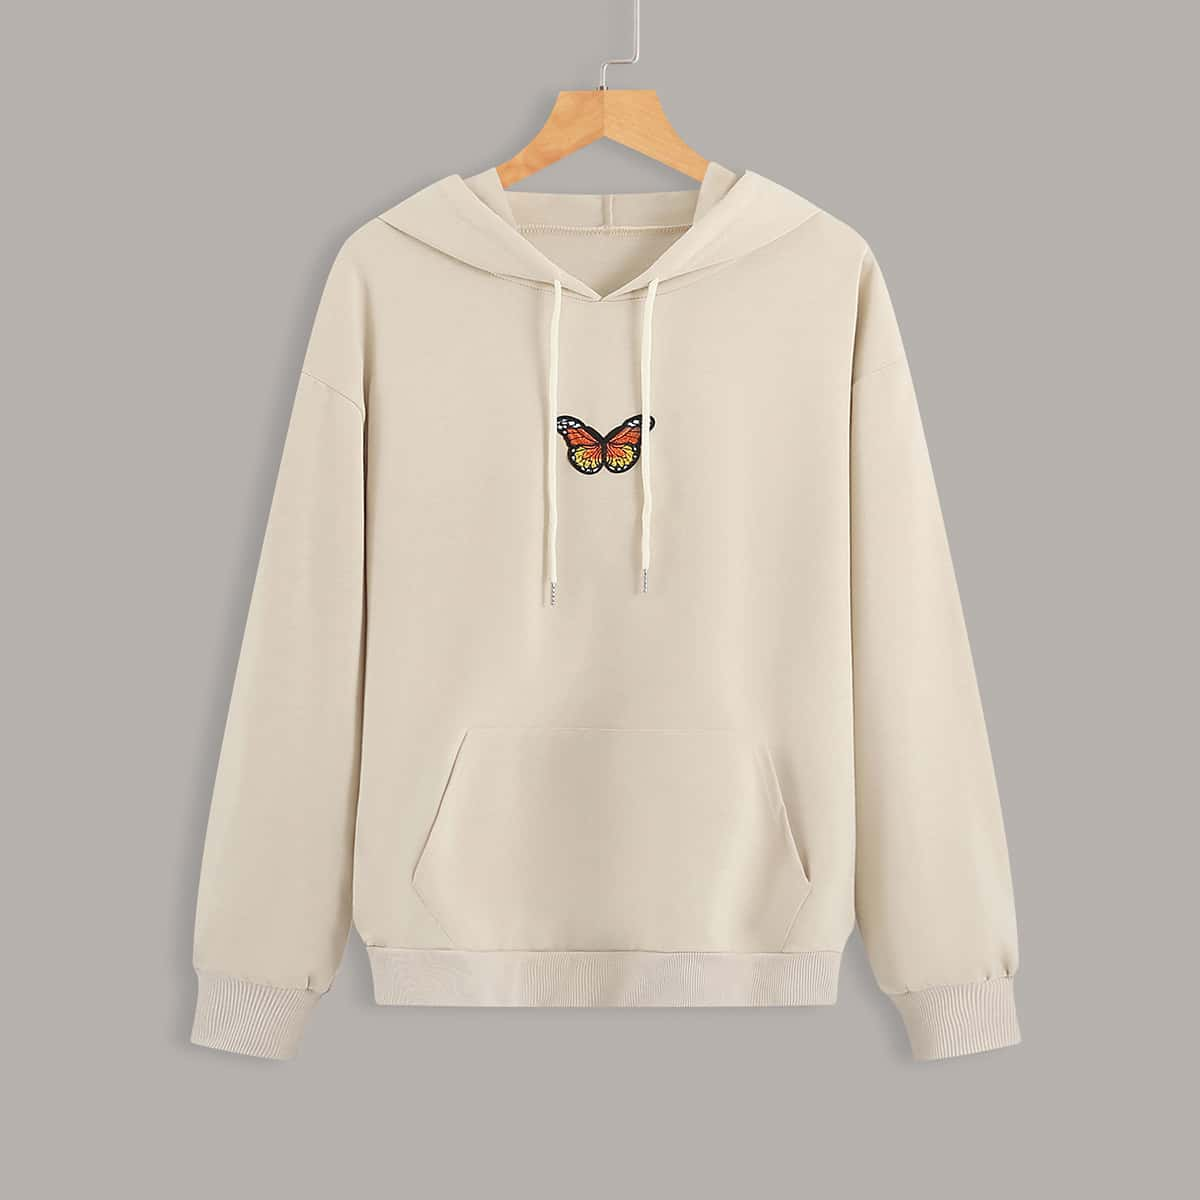 SHEIN / Butterfly Patched Kangaroo Pocket Drawstring Hoodie